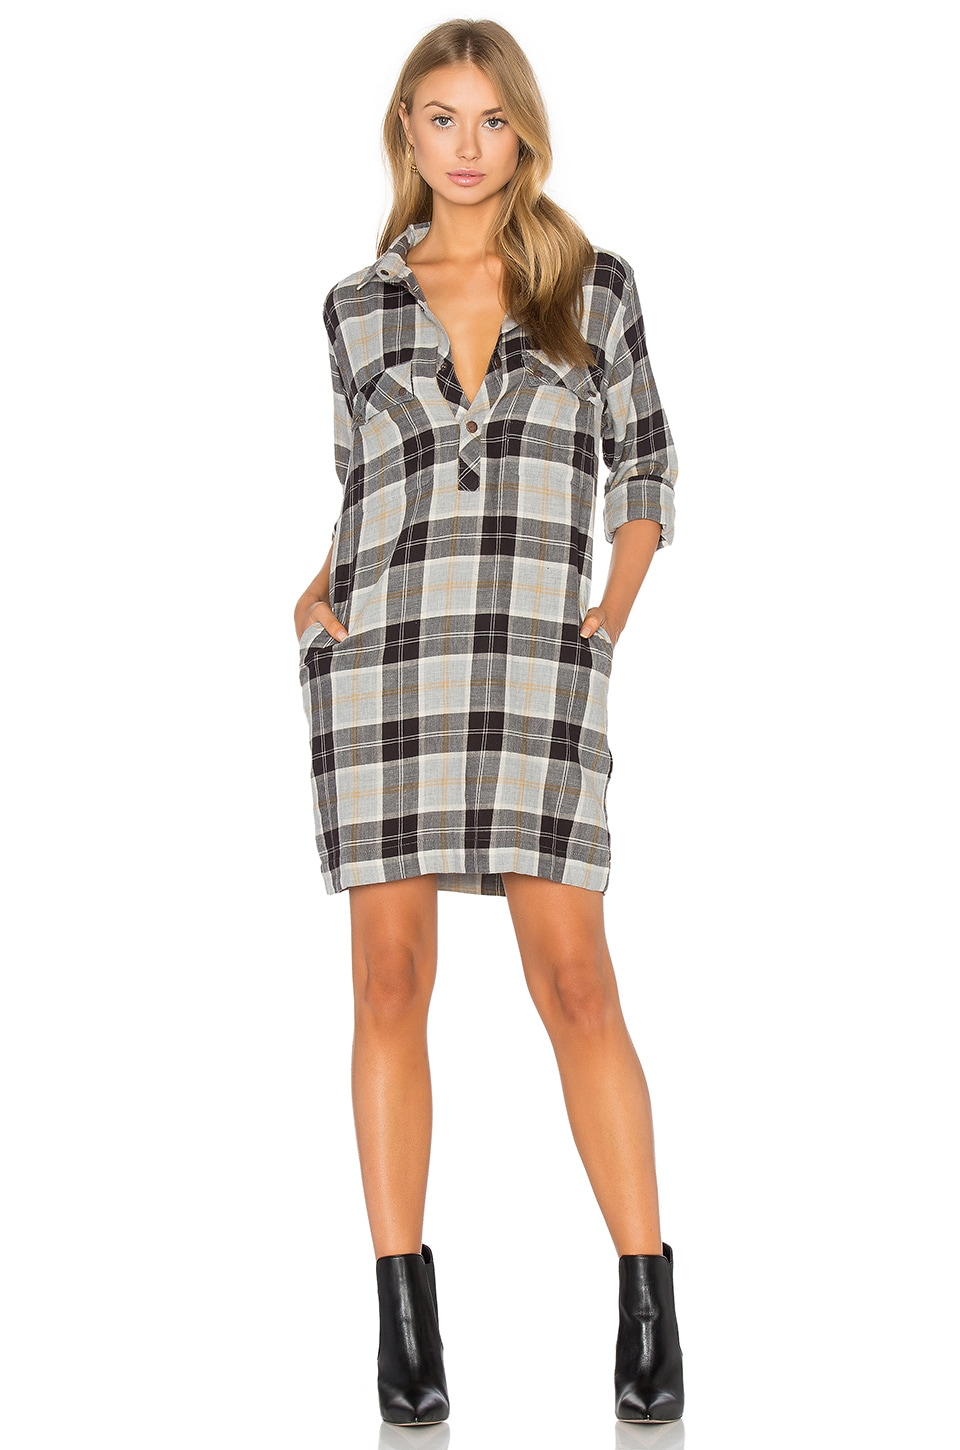 The Lara Shirt Dress by Current/Elliott